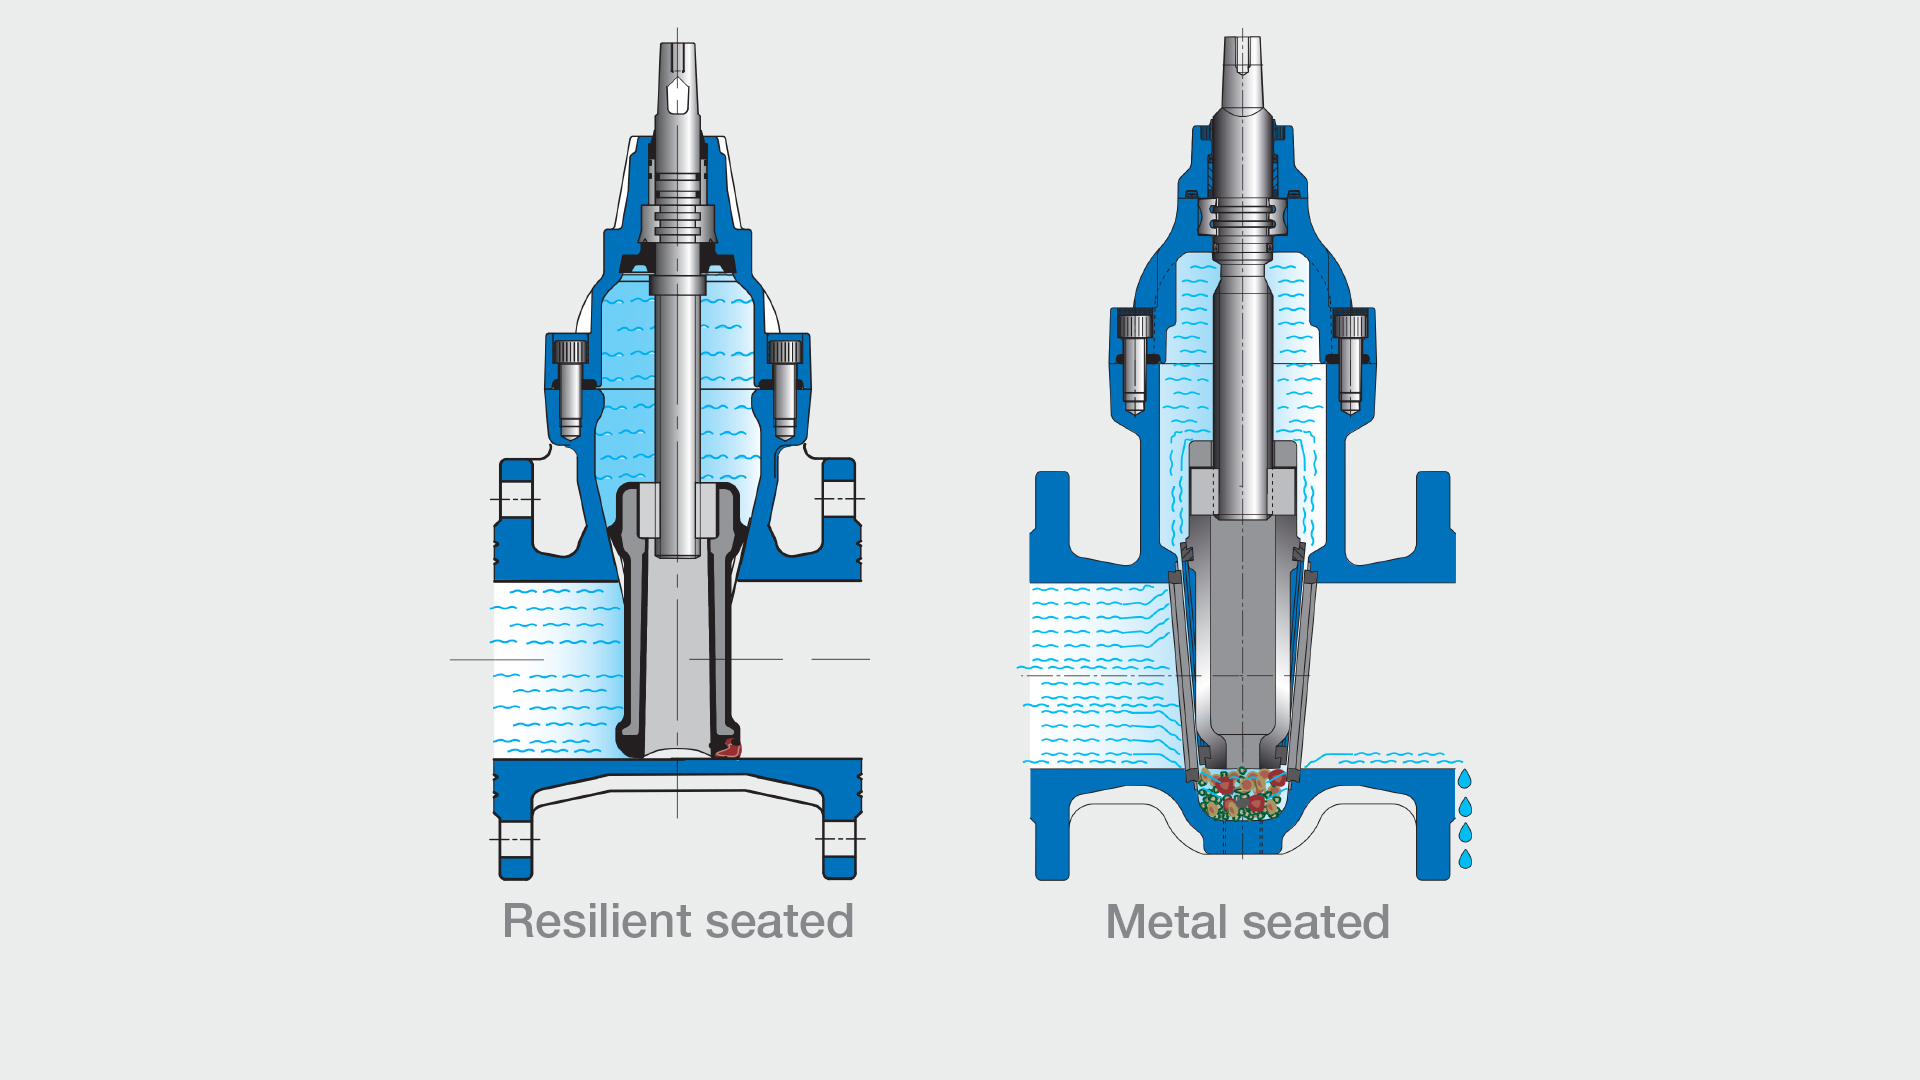 Illustration of resilient seated vs metal seated gate valves